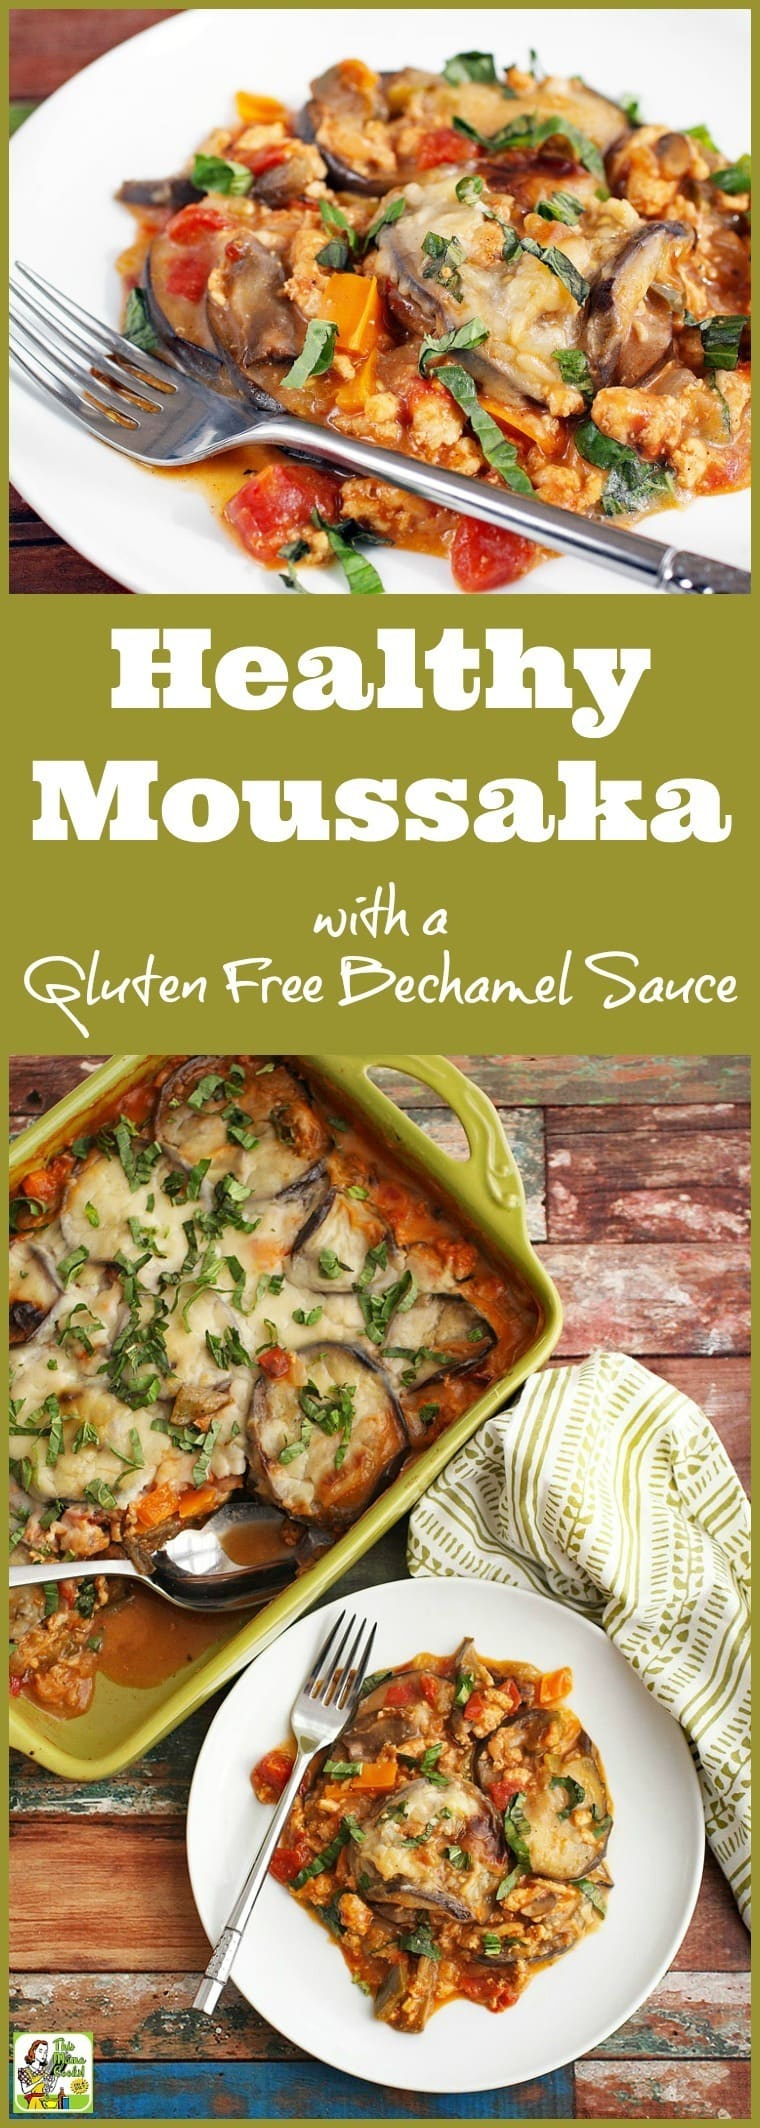 How to Make a Healthy Moussaka Recipe with a Gluten Free Bechamel Sauce